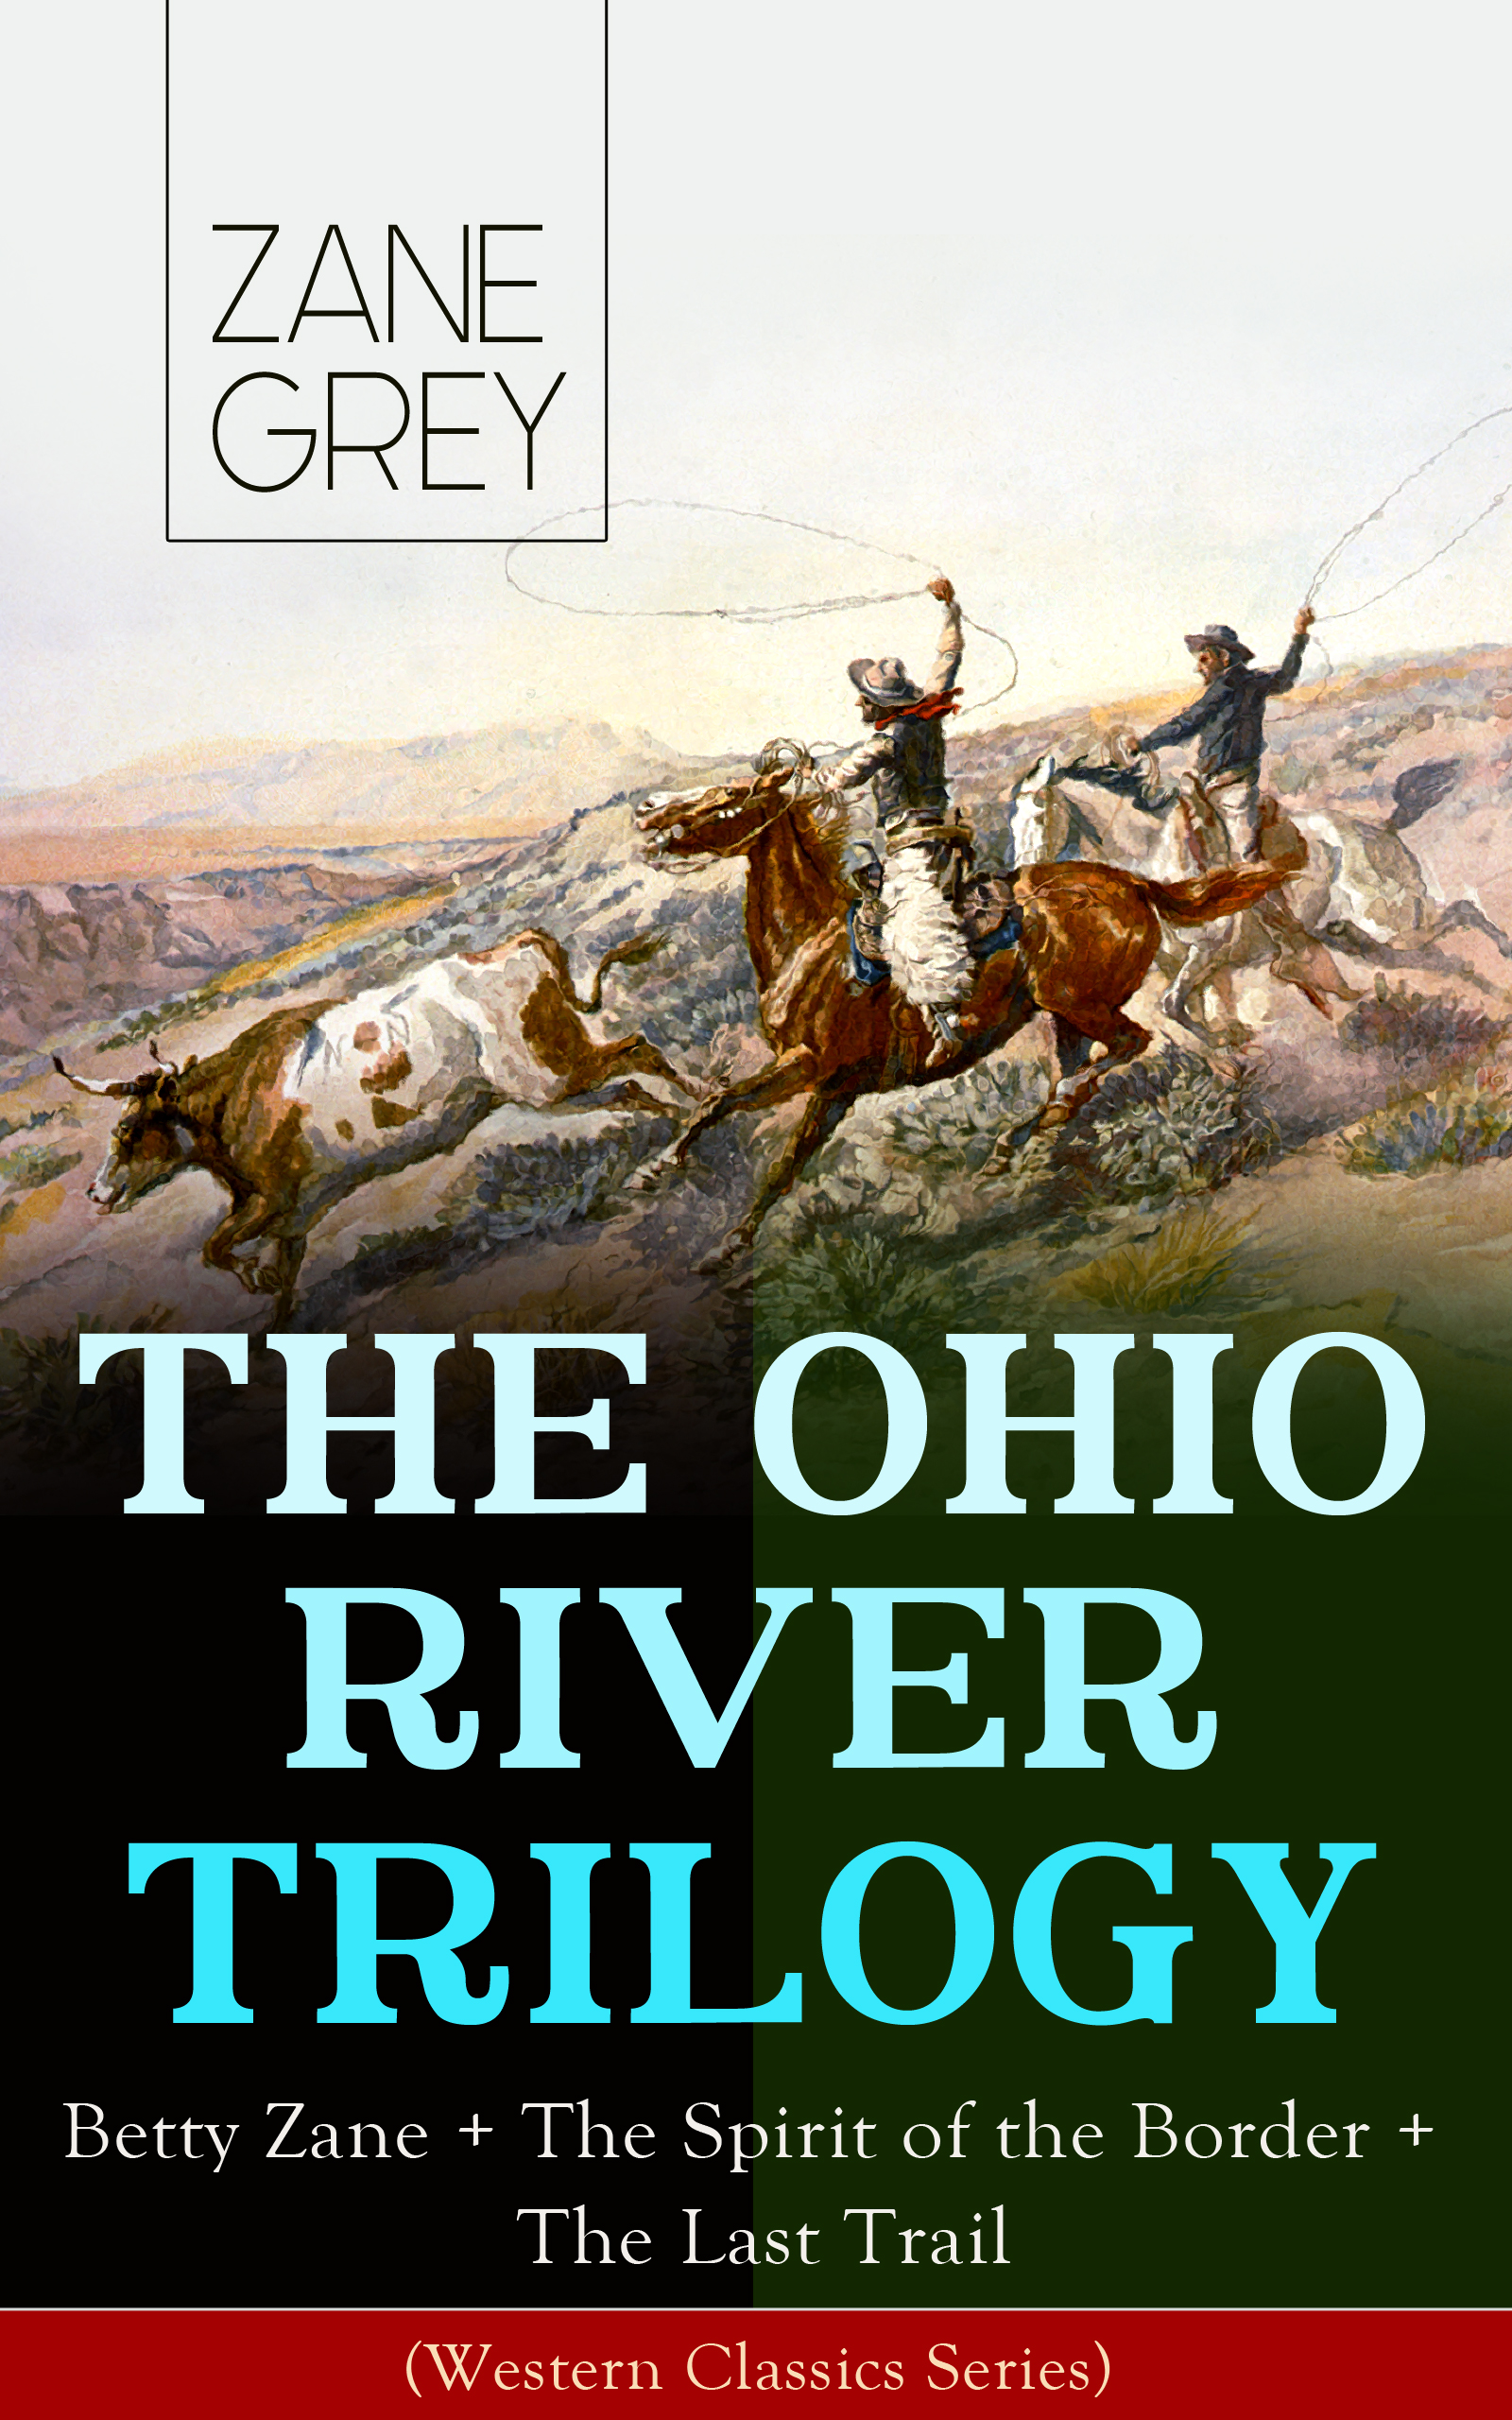 Zane Grey THE OHIO RIVER TRILOGY: Betty Zane + The Spirit of the Border + The Last Trail (Western Classics Series) the best of archie comics starring betty